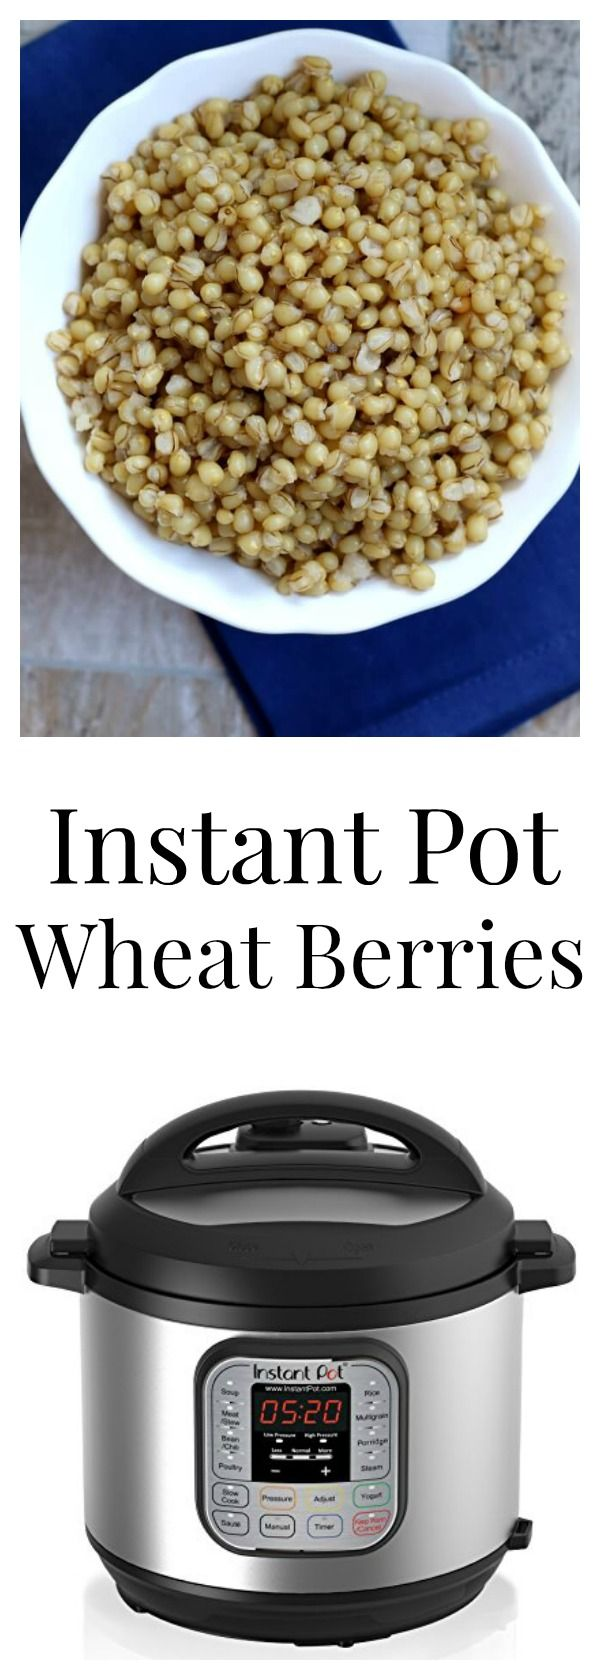 Instant Pot Wheat Berries–tender, chewy wheat berries cooked in minutes in your pressure cooker. I like to use them in salads, chili or spaghetti sauce.